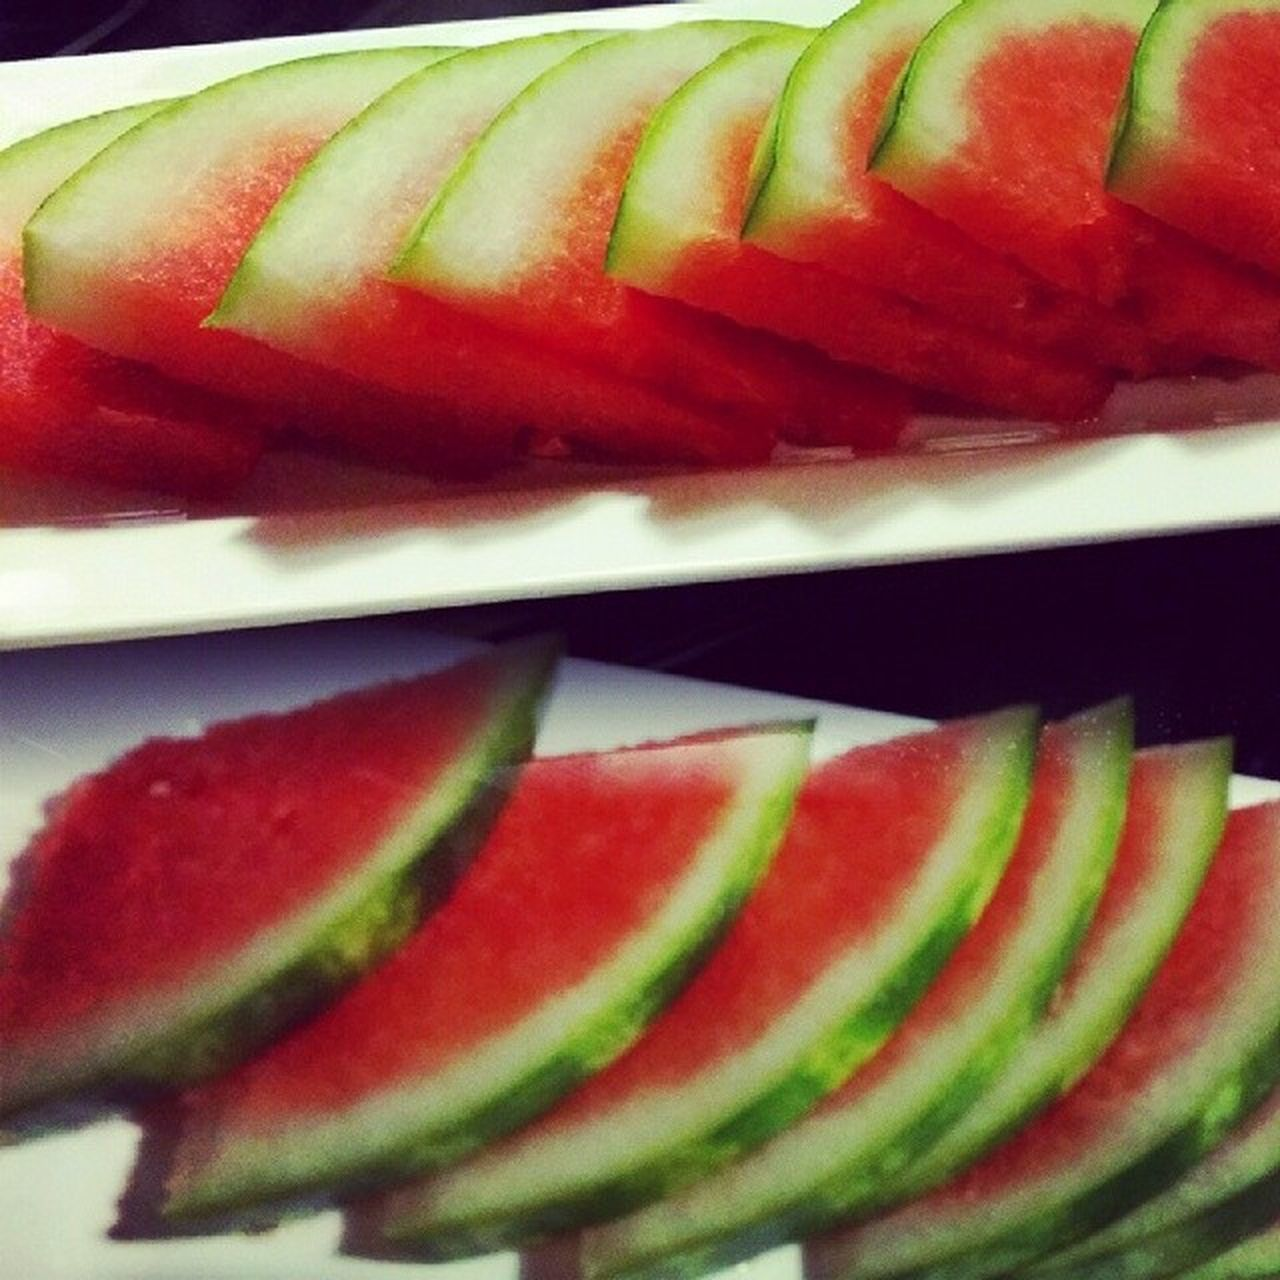 food and drink, freshness, slice, food, healthy eating, red, watermelon, ready-to-eat, indoors, fruit, plate, serving size, no people, close-up, temptation, healthy lifestyle, day